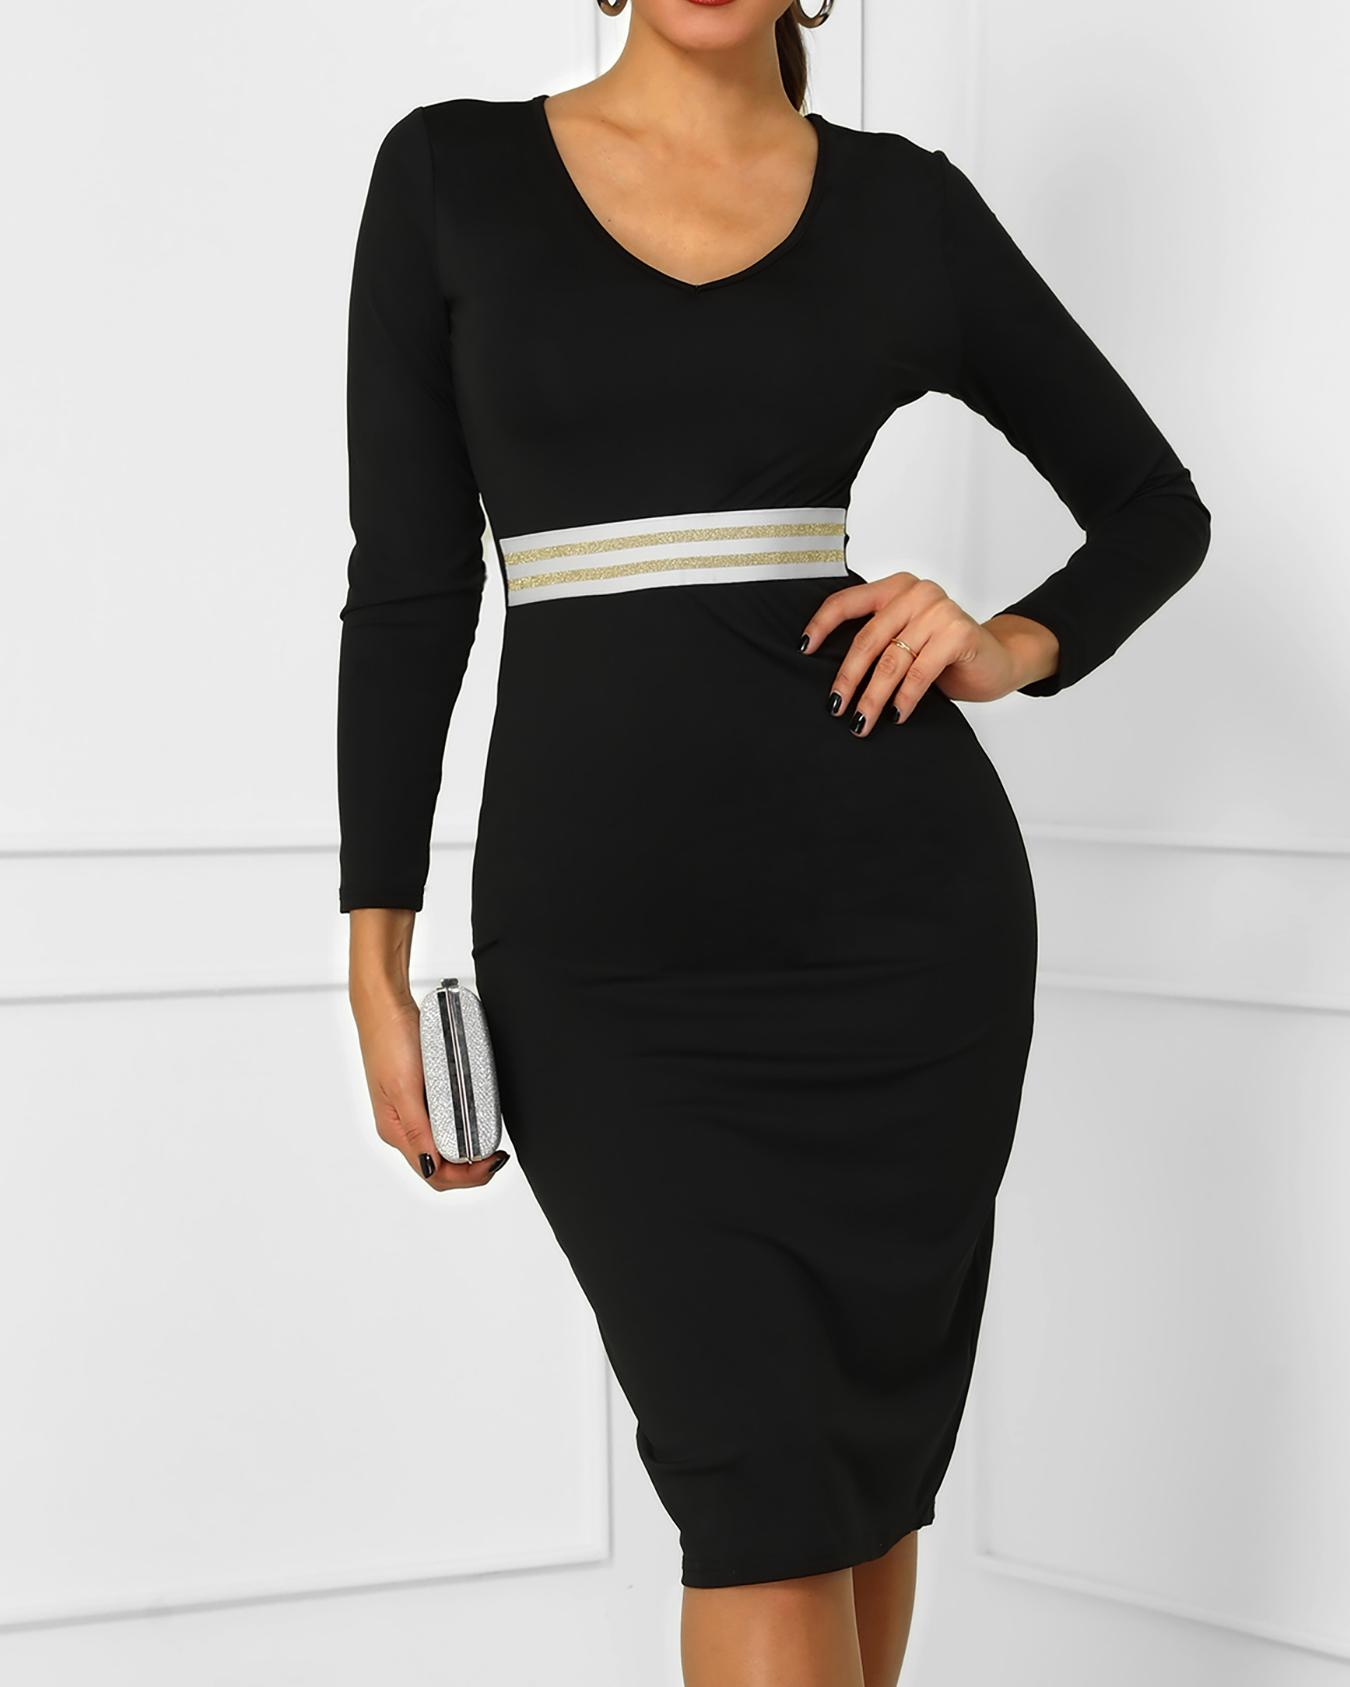 ivrose / Long Sleeve Contrast Striped Bodycon Dress